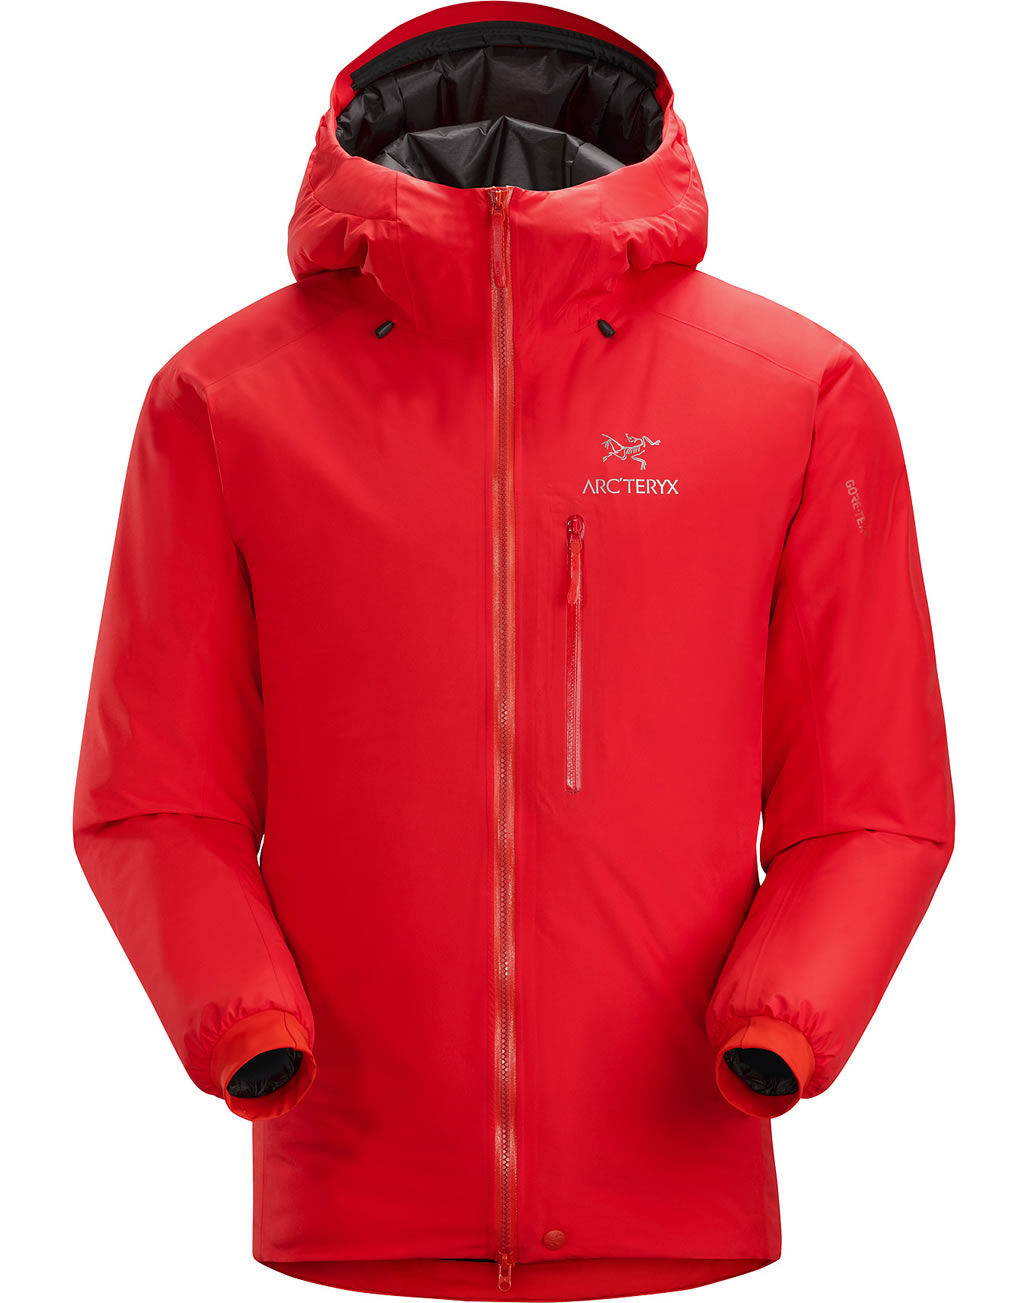 Alpha IS Jacket by Arc'teryx